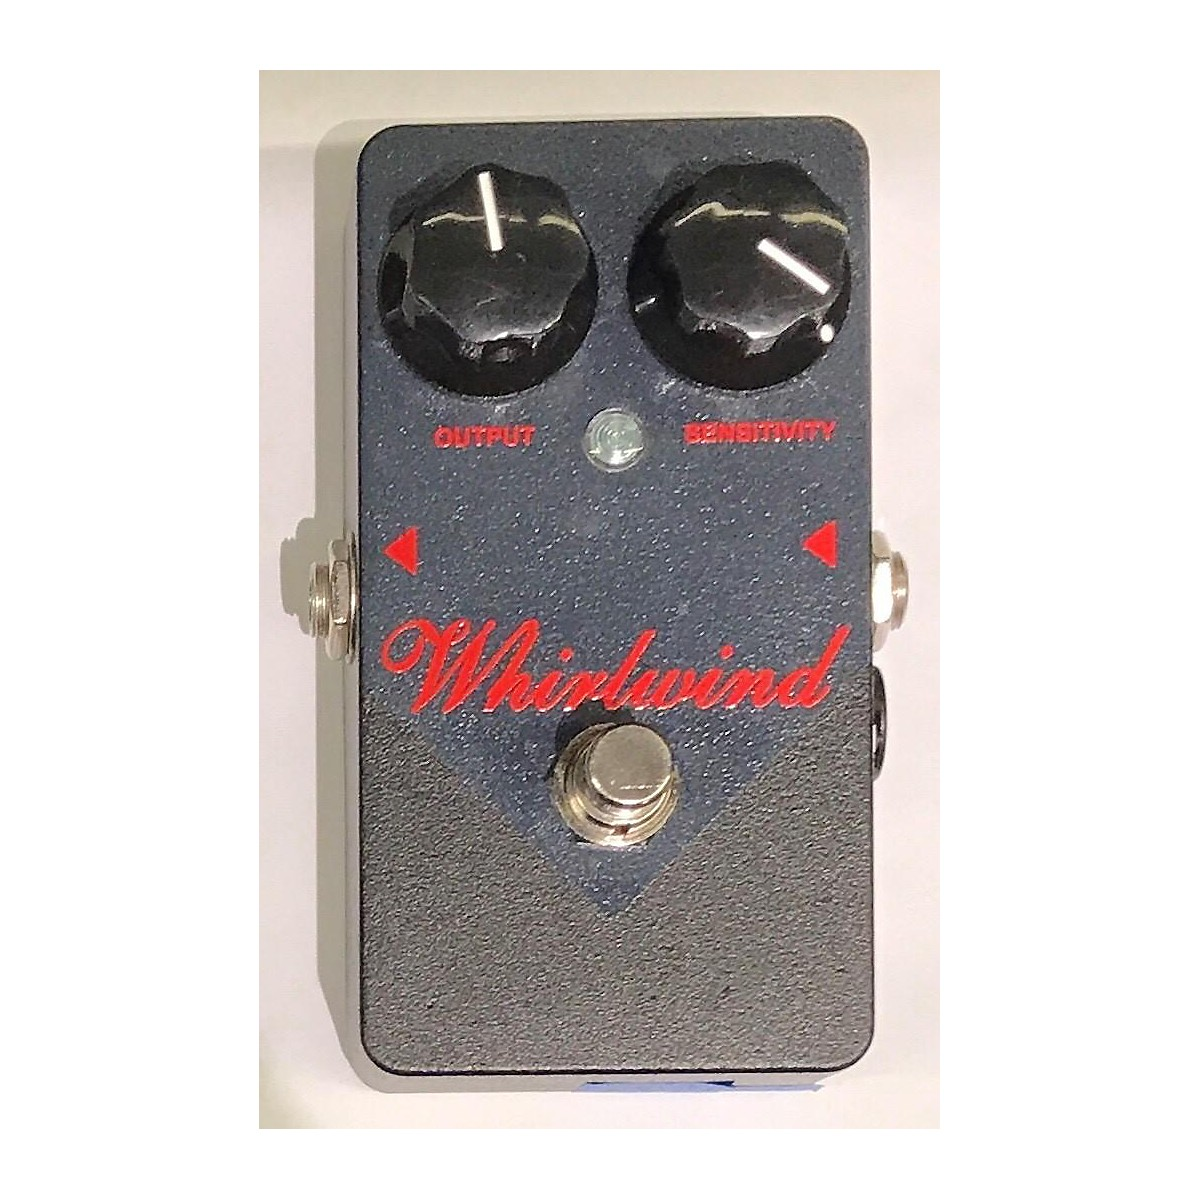 Whirlwind Red Box Compressor Effect Pedal